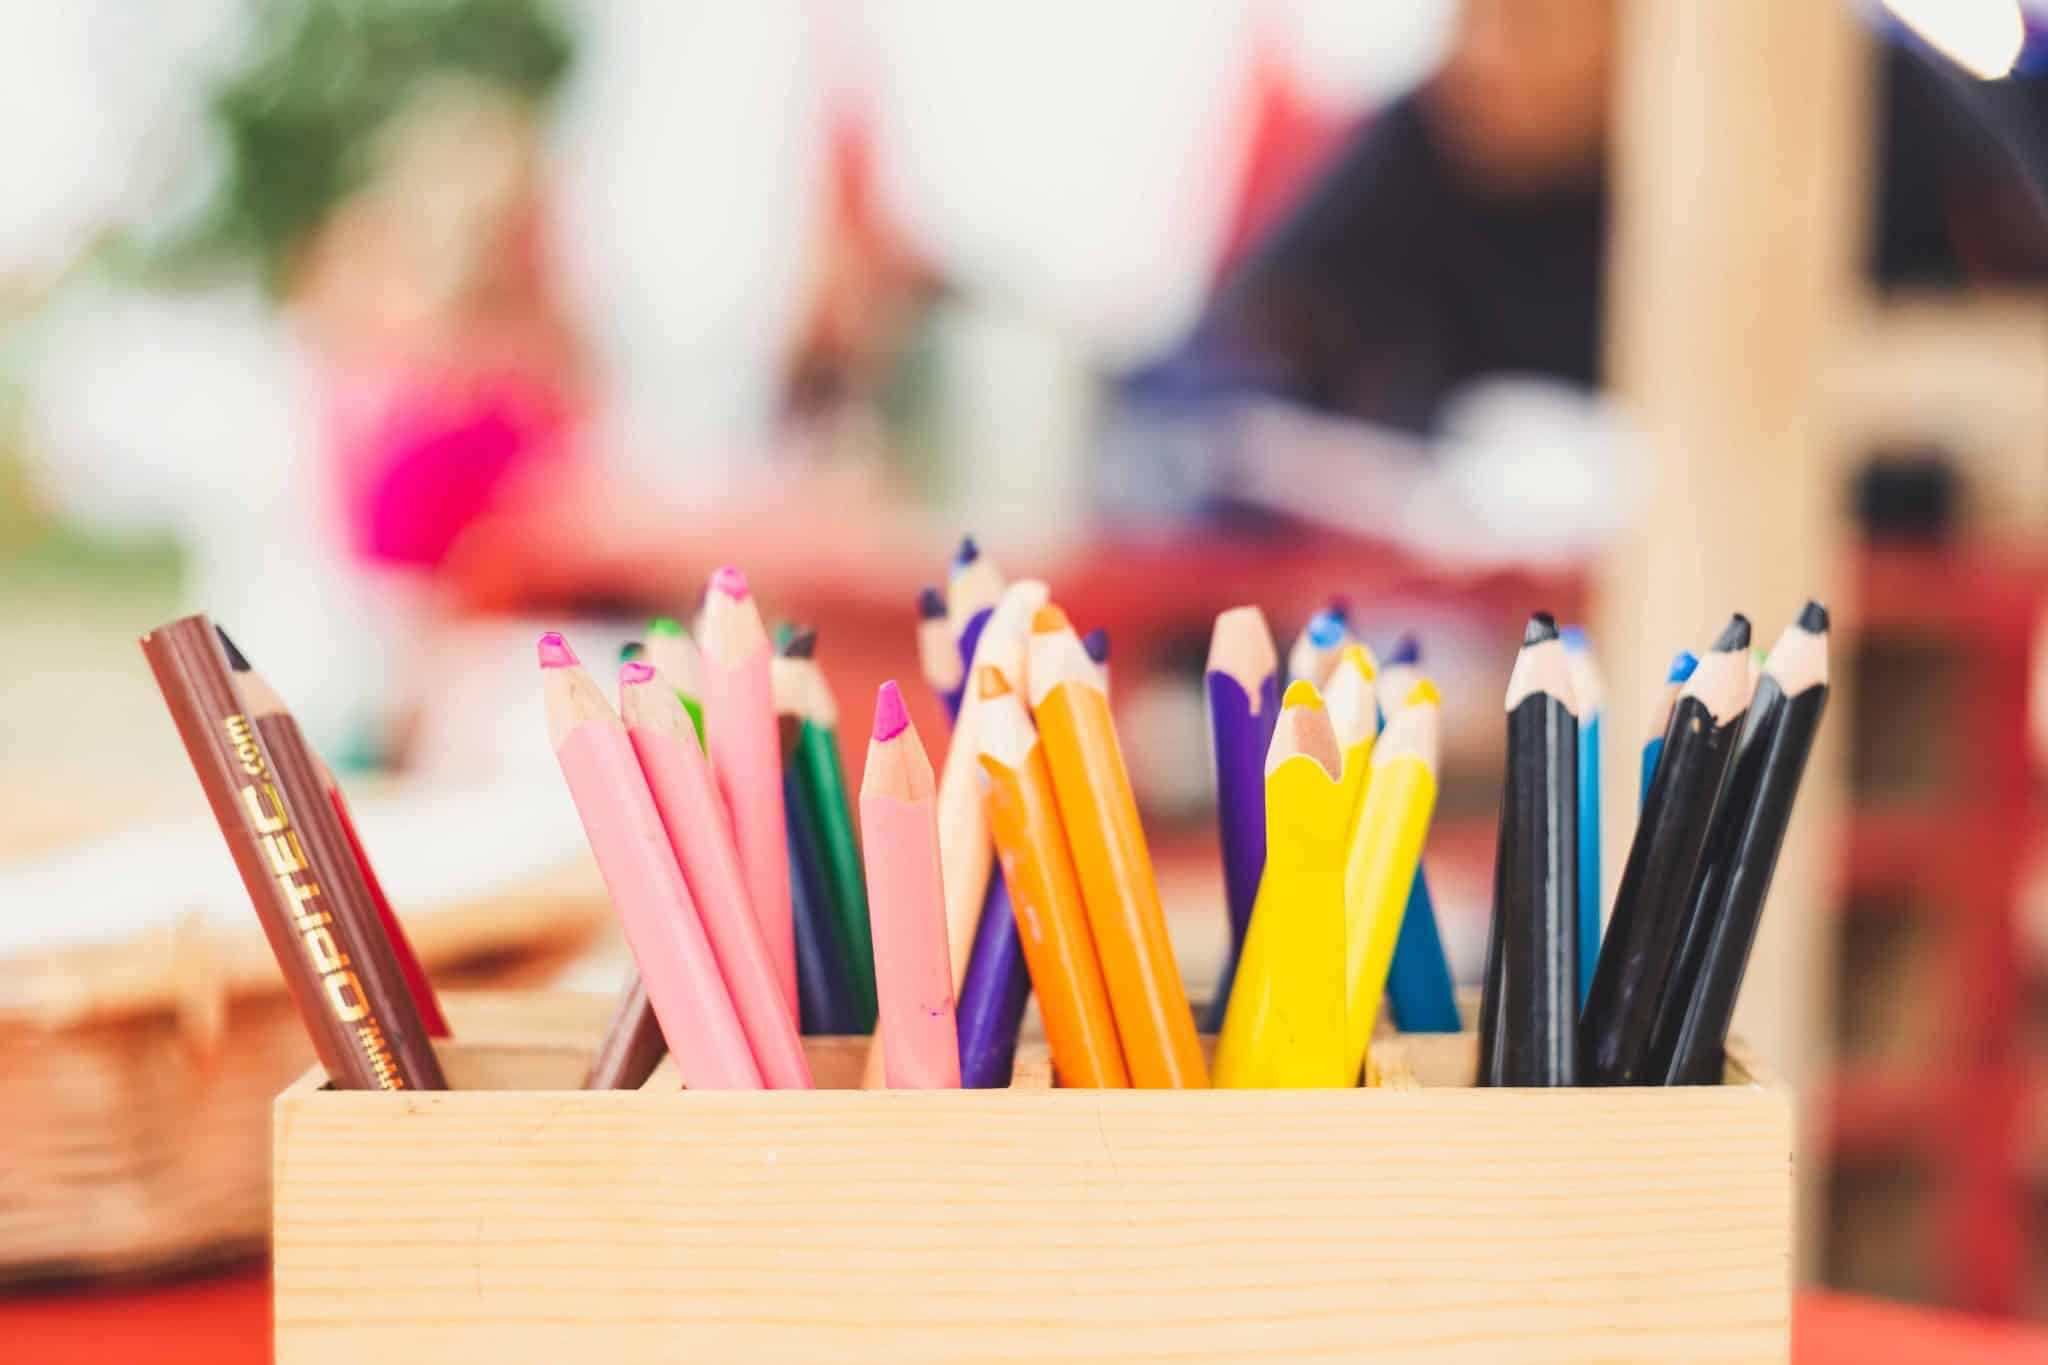 Colouring pencils. Colouring is a big industry now, so it could be a potential way to make money!